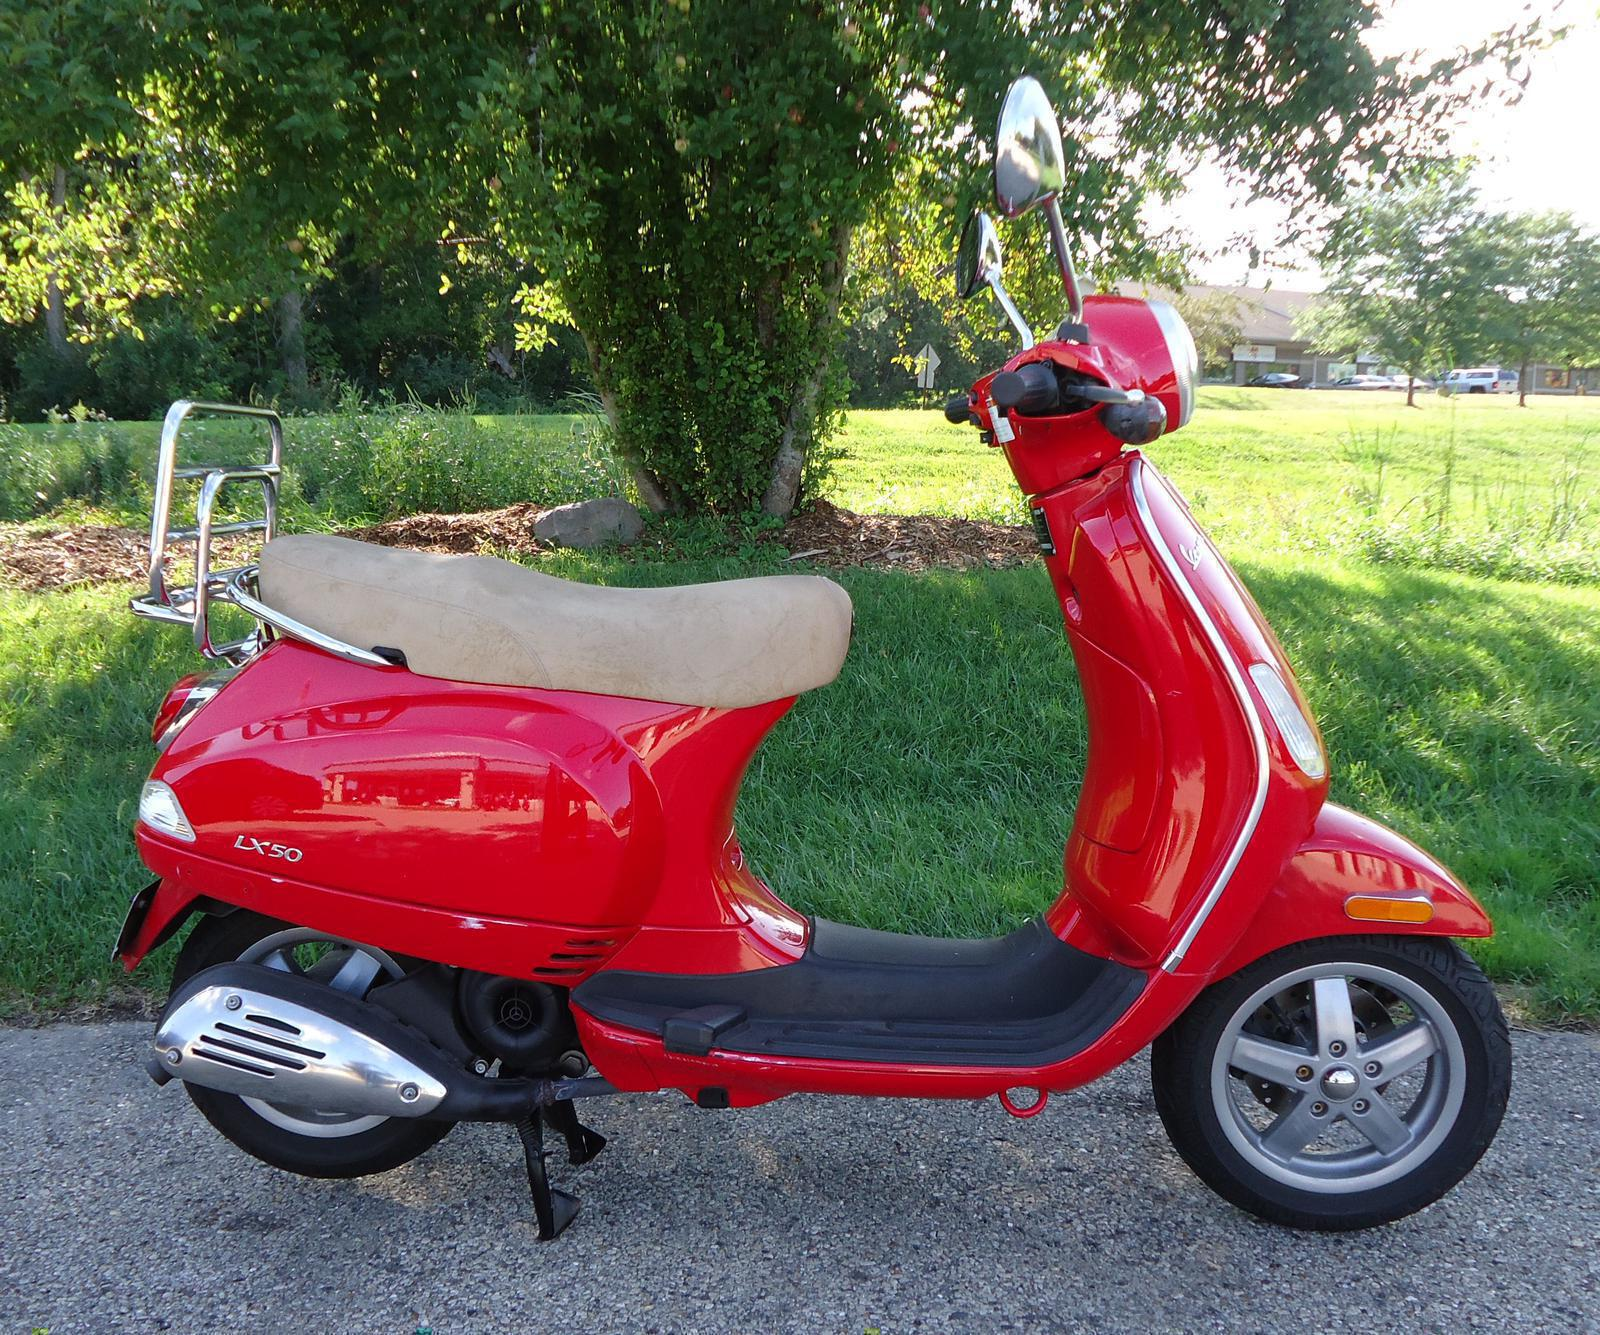 2009 Vespa Lx50 Scoot Jockeys